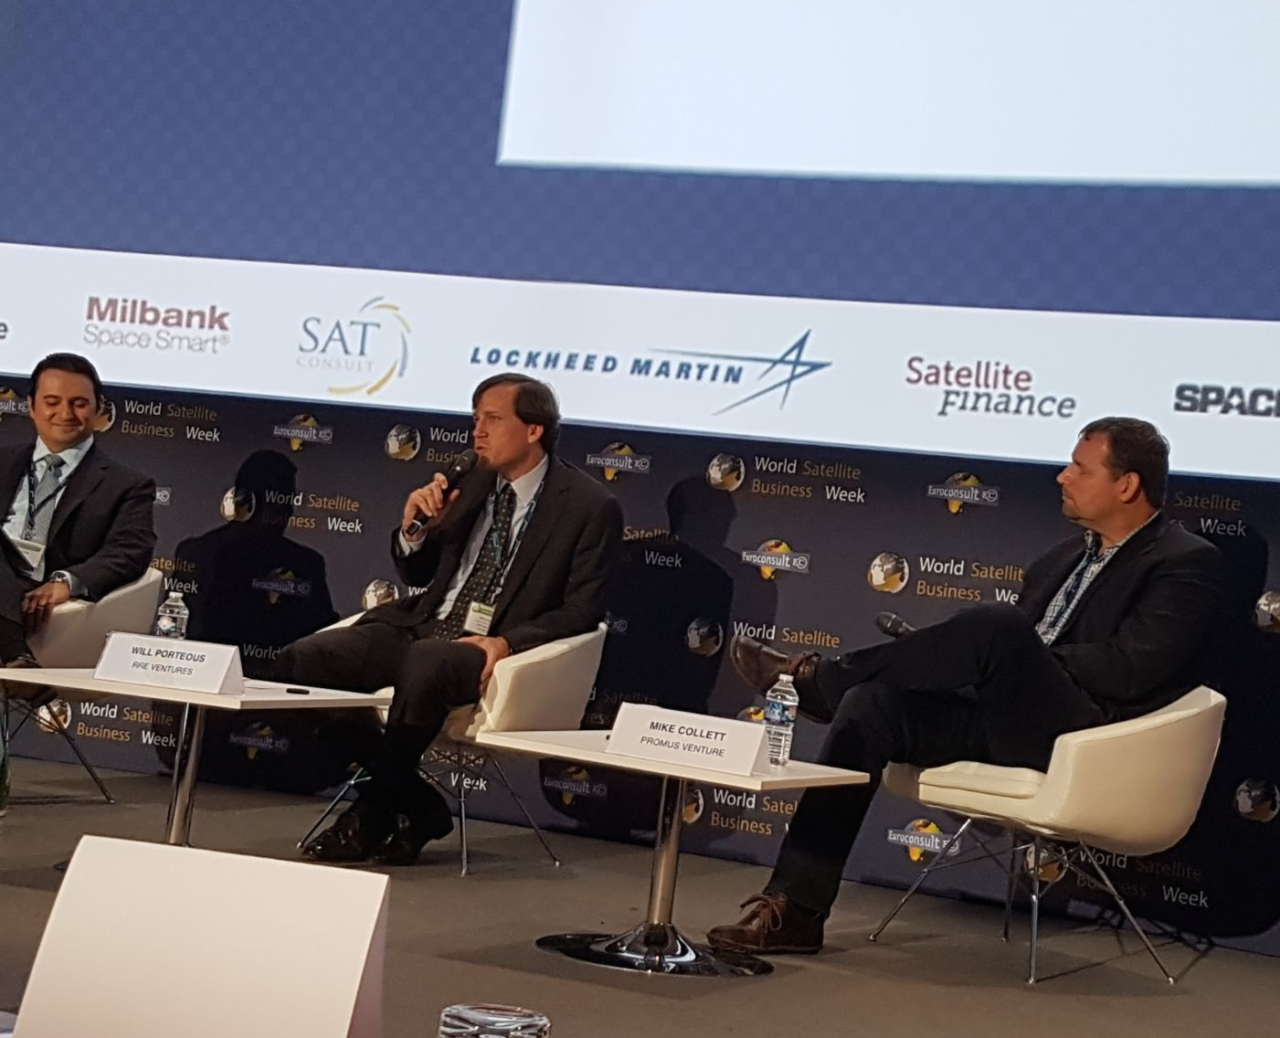 Mike Collett, founder and managing partner of Promus Ventures, and Will Porteous, general partner and COO of RRE Ventures, share their thoughts on stage during World Satellite Business Week. Photo: Mark Holmes, Via Satellite.